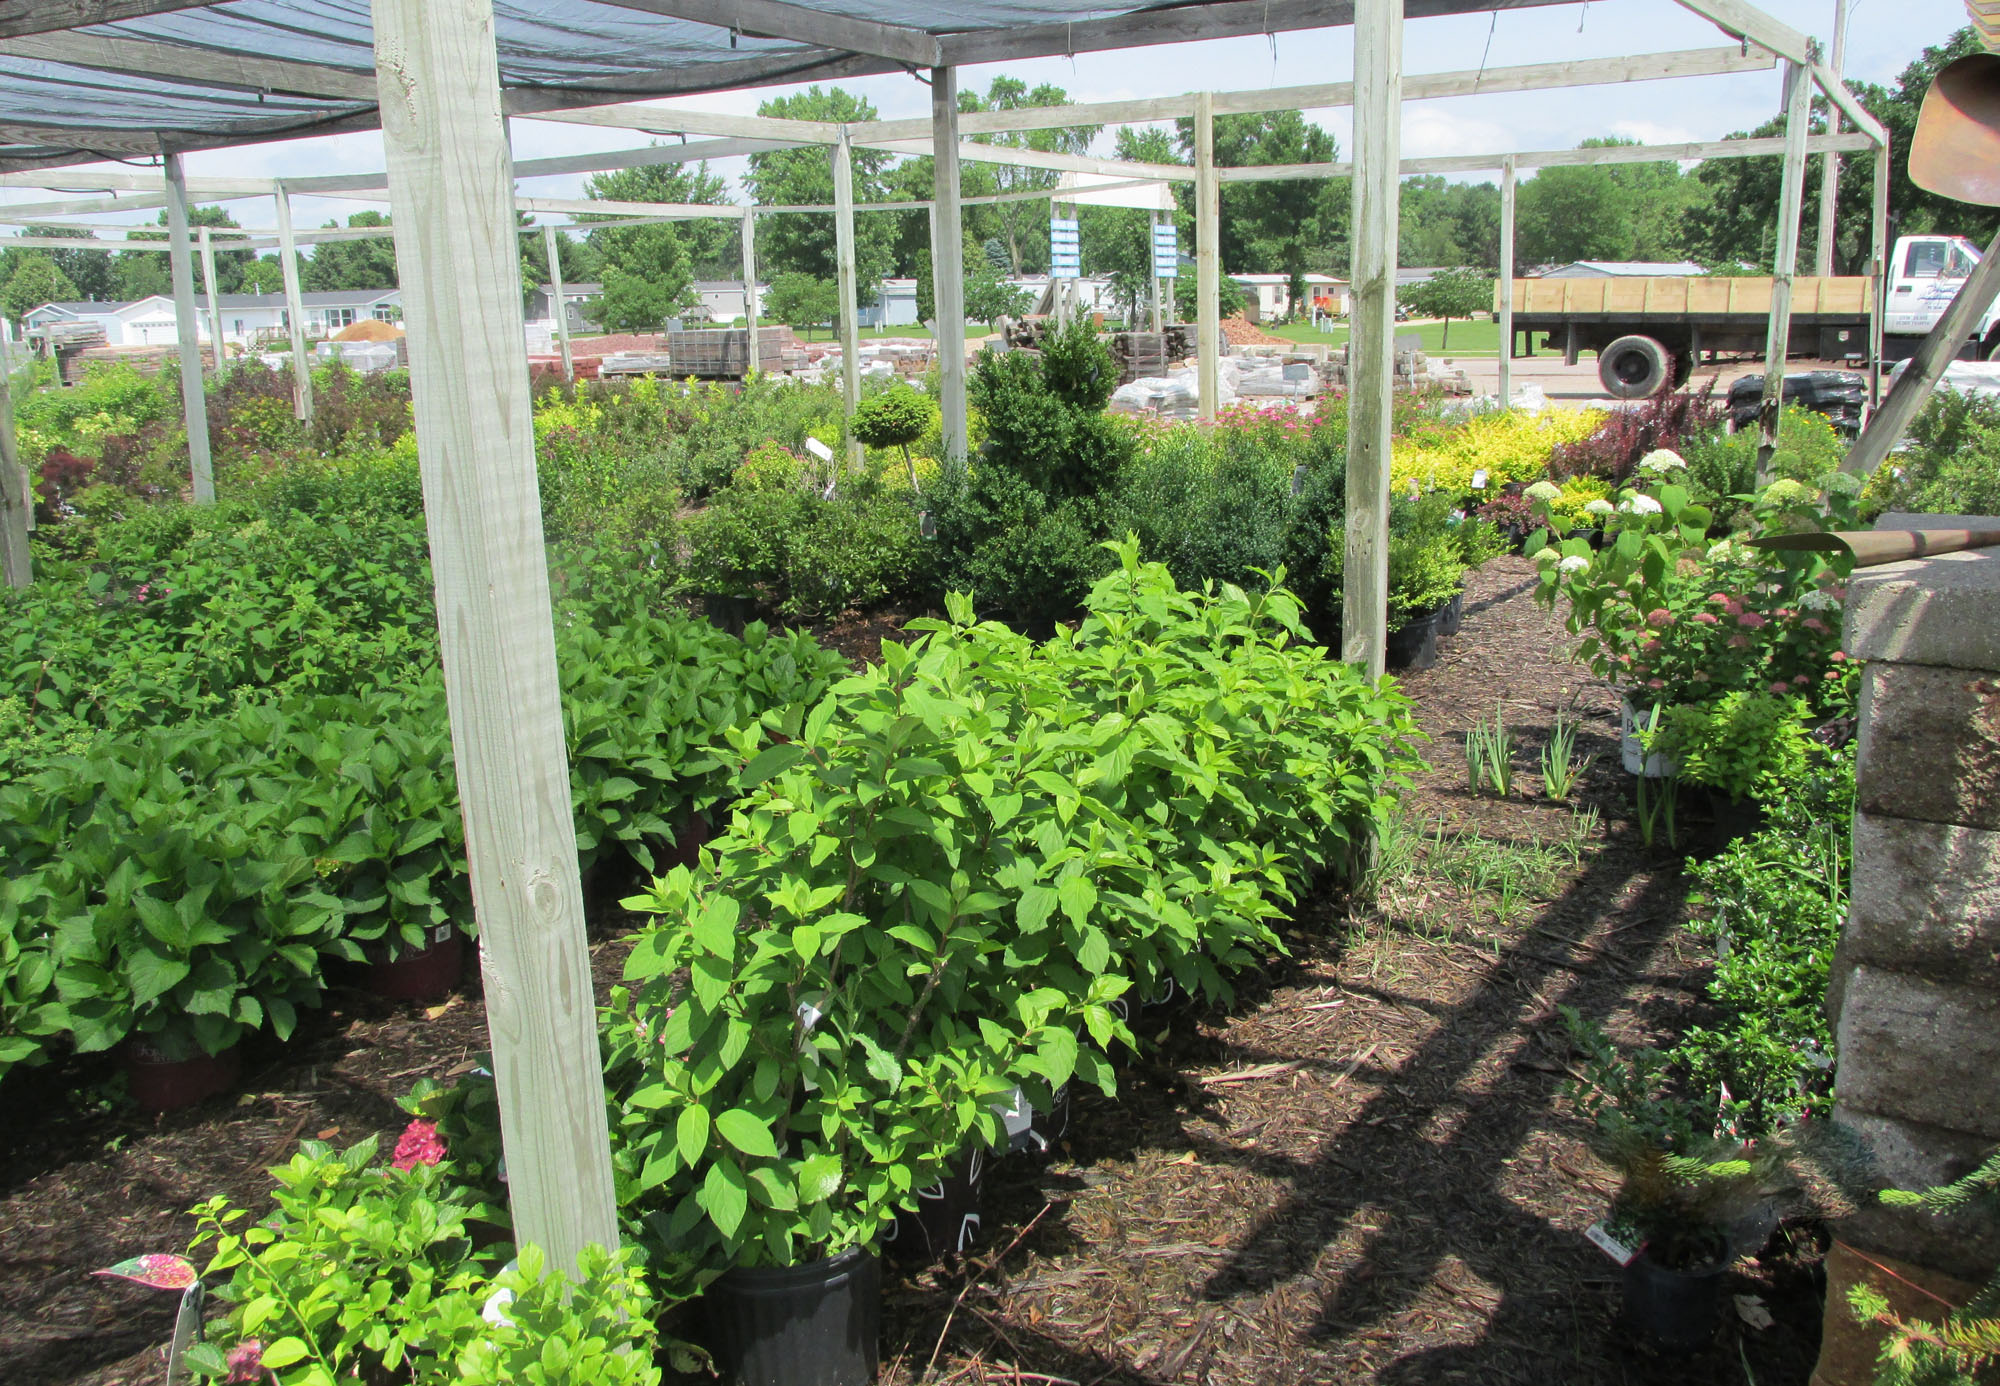 Prestige landscaping and garden center wisconsin travel guide prestige lawn garden center wisconsin 2 solutioingenieria